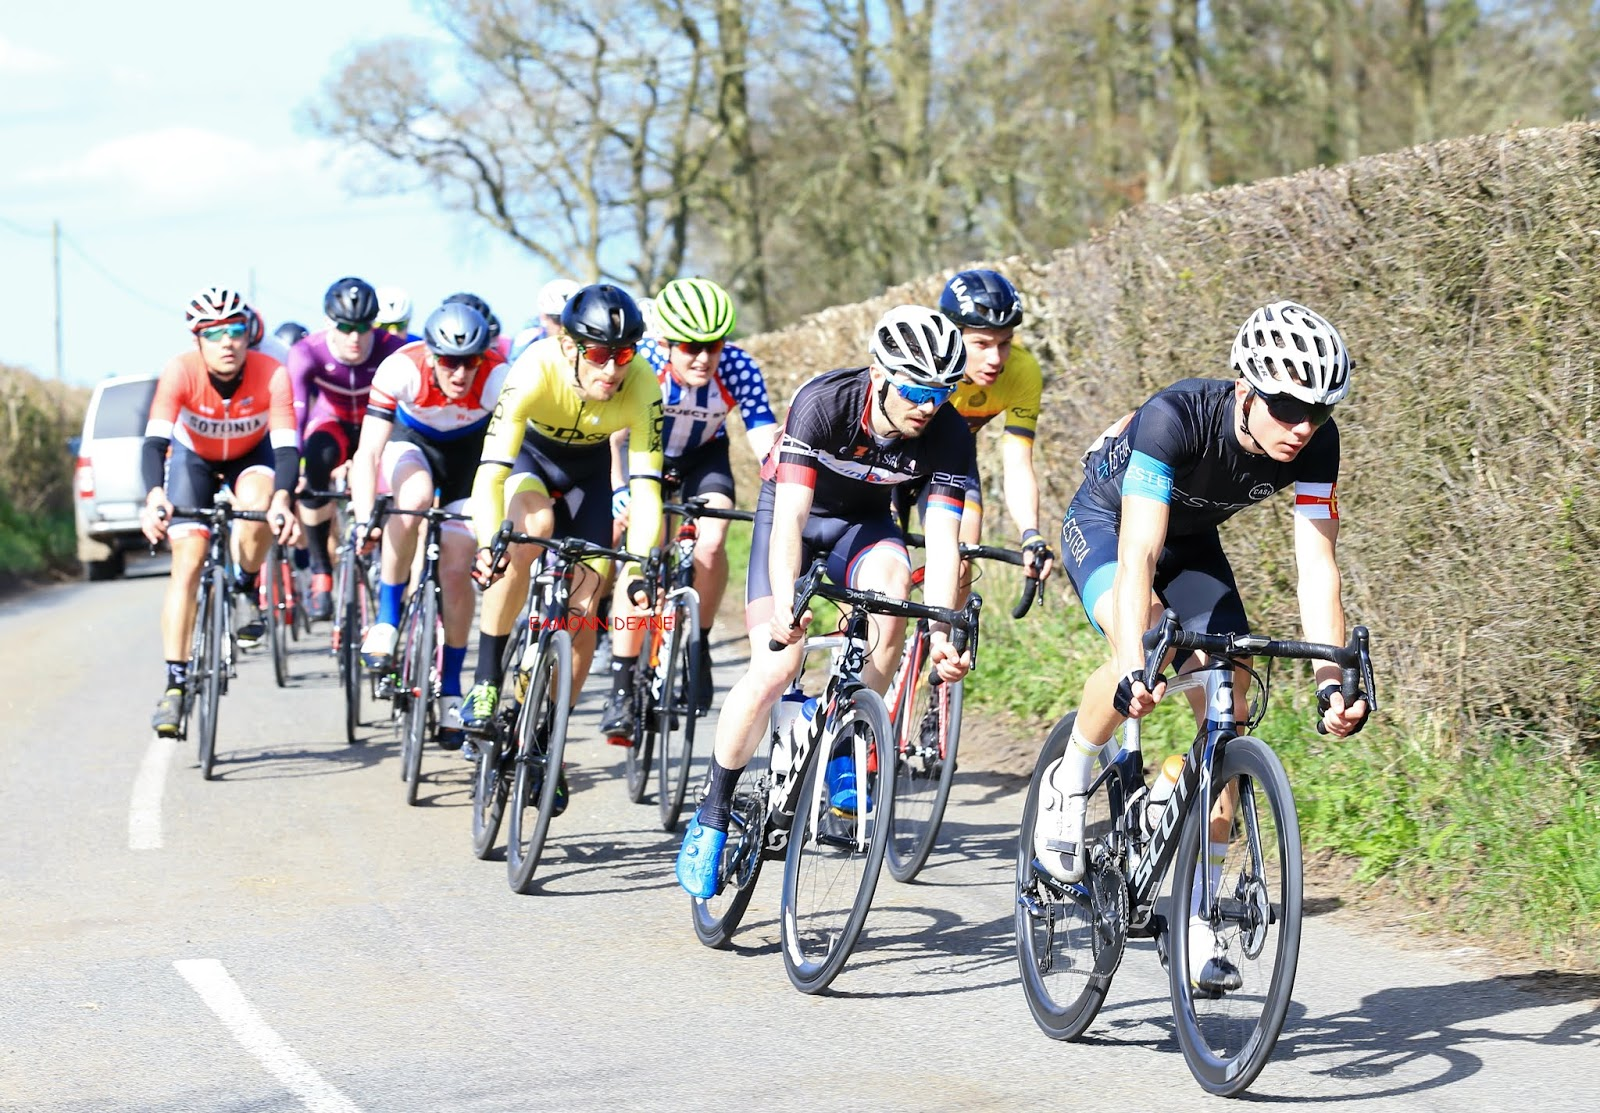 Local Riders,Local Races: Welburn Wraps up Sandison Win in